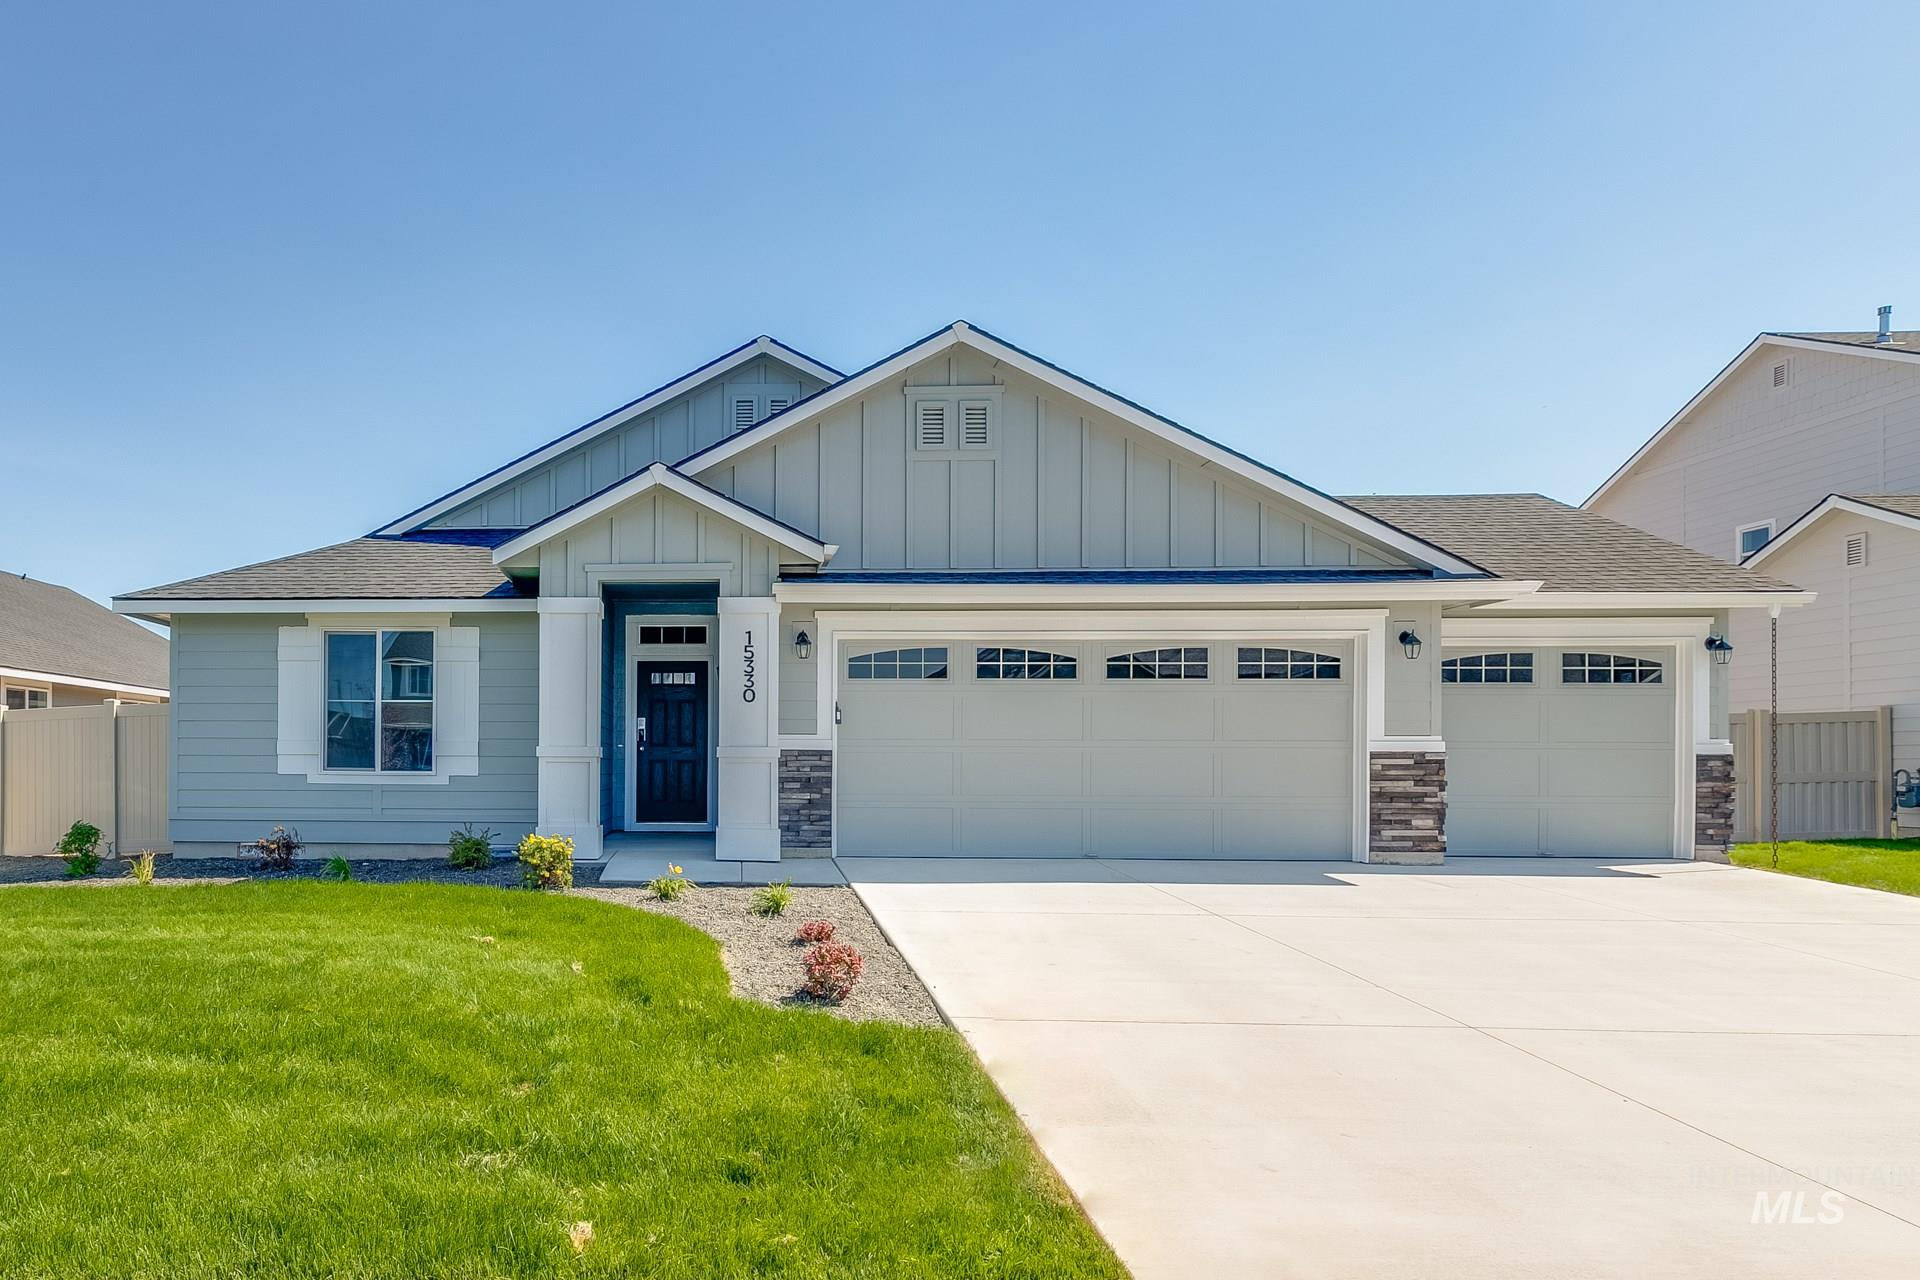 15371 Hogback Way Property Photo - Caldwell, ID real estate listing